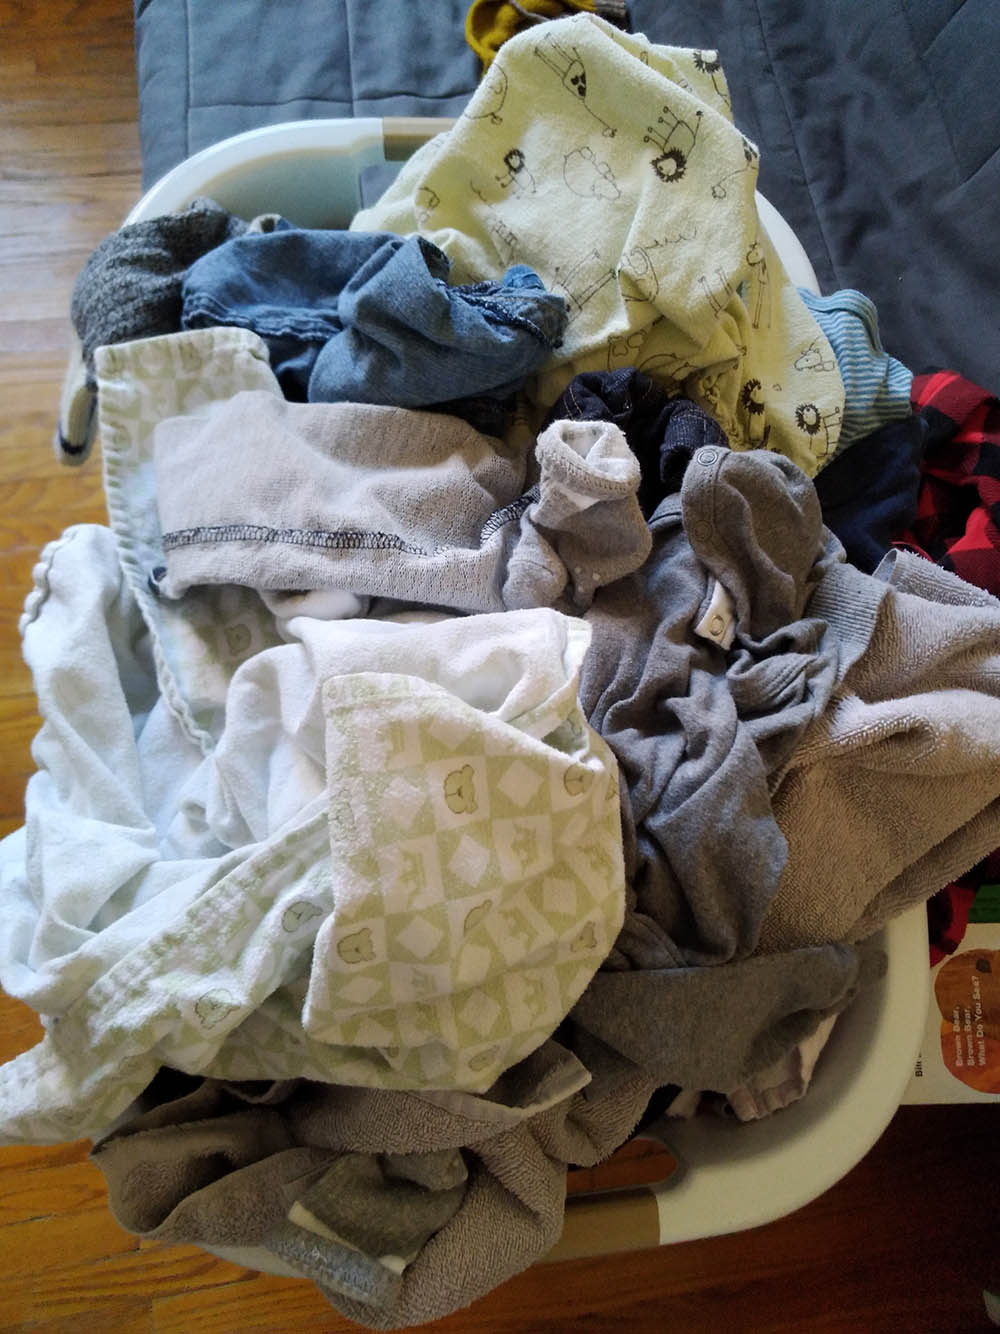 Ugh, there are SO MANY tiny crumpled up clothes in this basket.